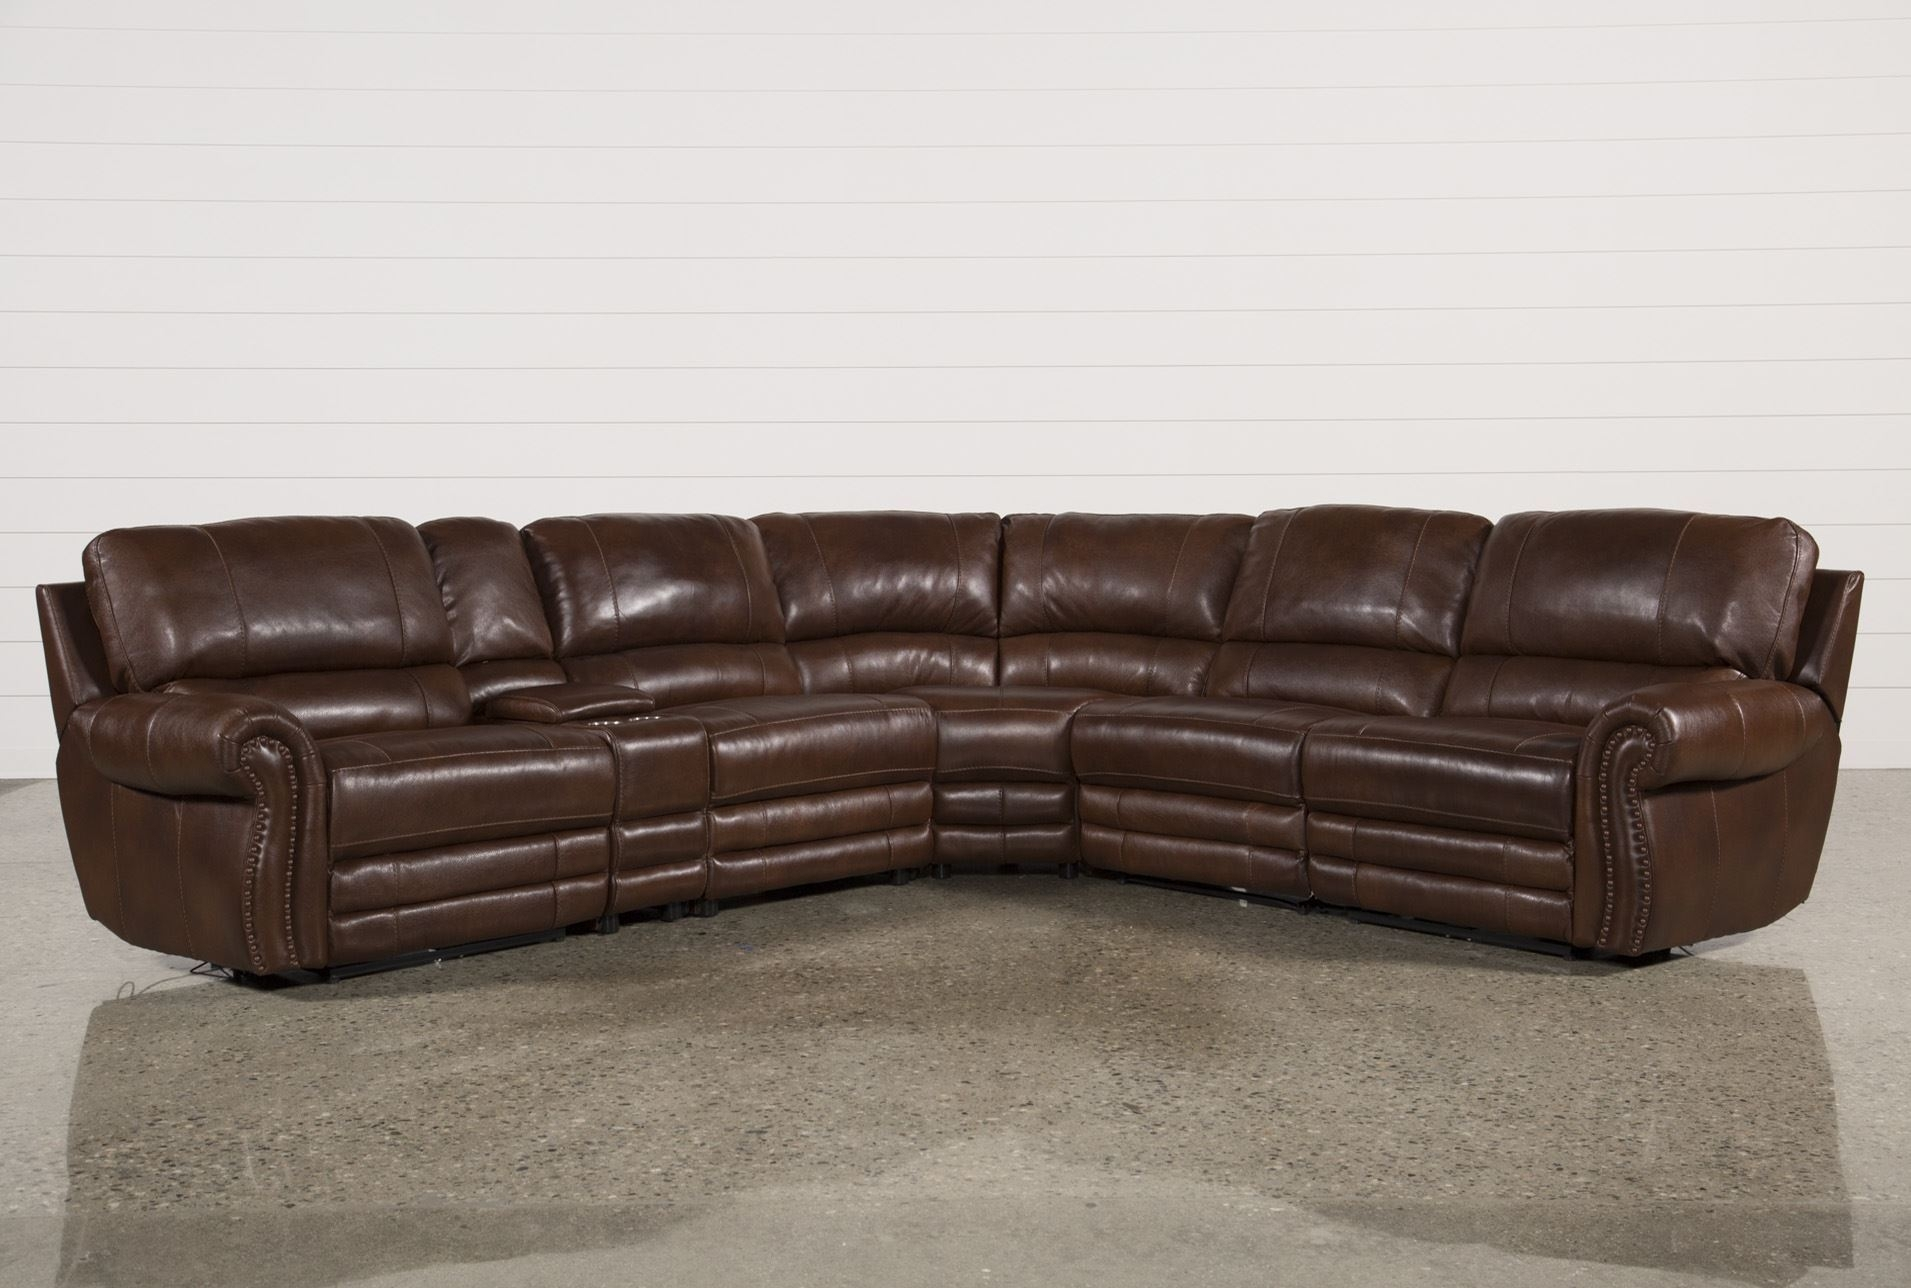 Perfect 6 Piece Leather Sectional Sofa 93 About Remodel With 6 Piece in 6 Piece Leather Sectional Sofas (Image 9 of 10)